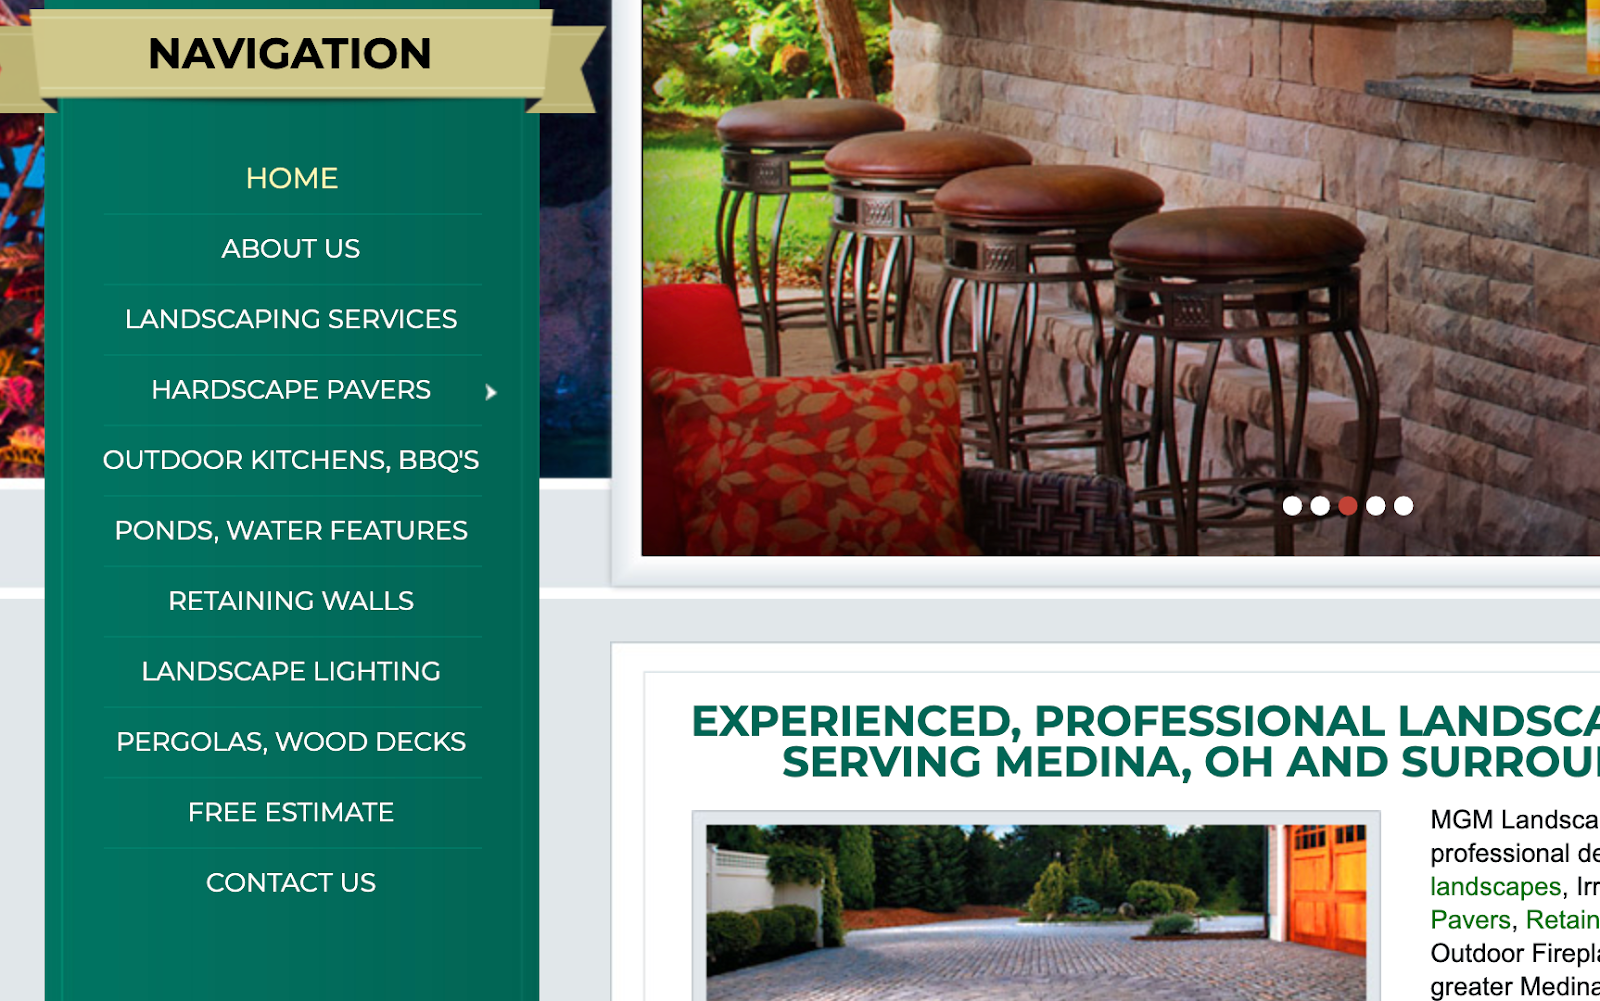 Website navigation screenshot from a landscaping company.